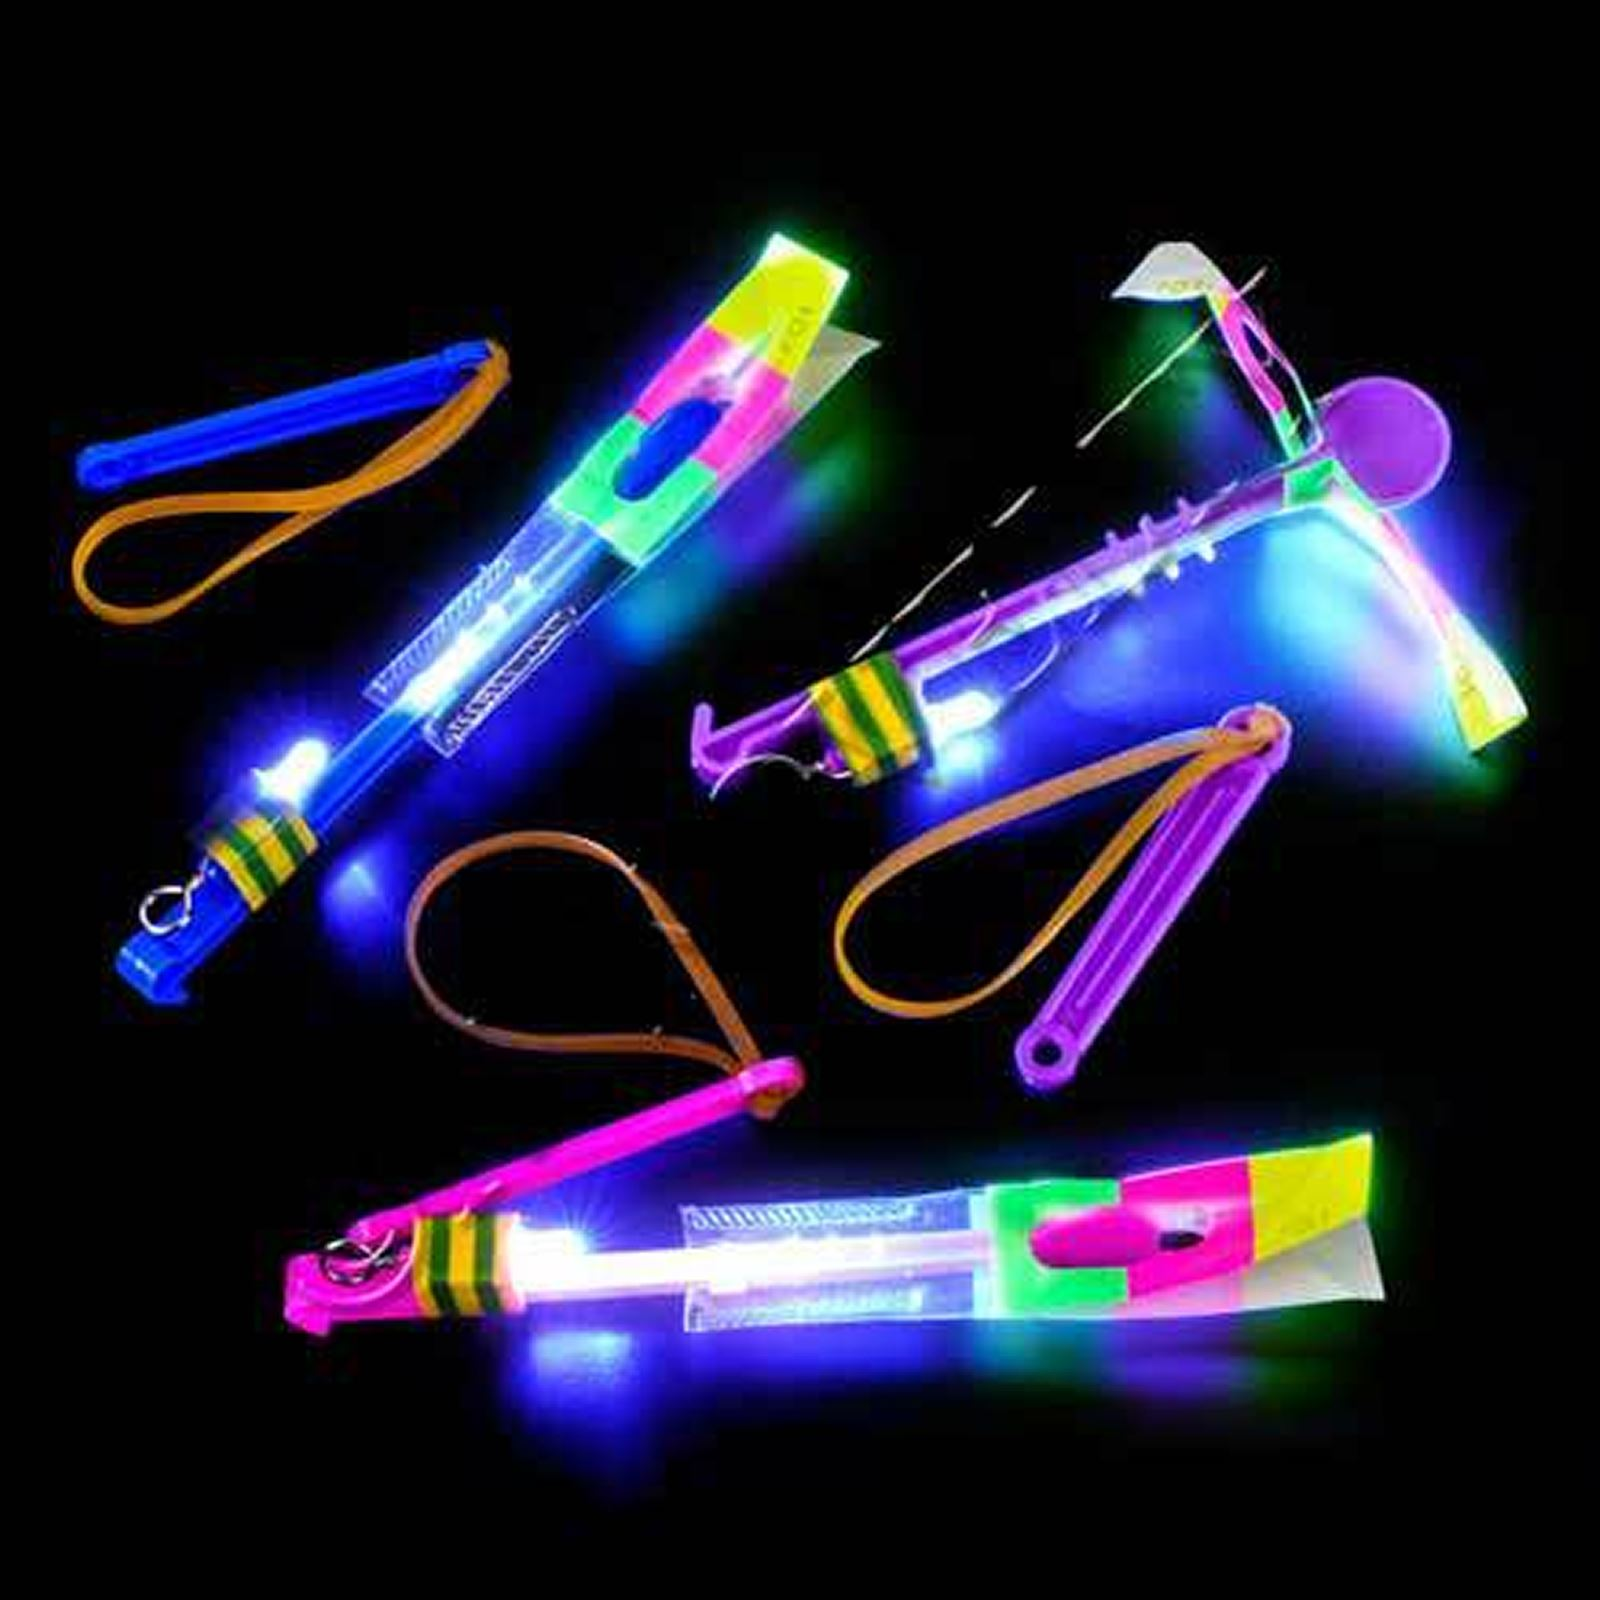 Led Light Fun Led Heli Boys Girls Toy Fun Lights Party Bag Xmas